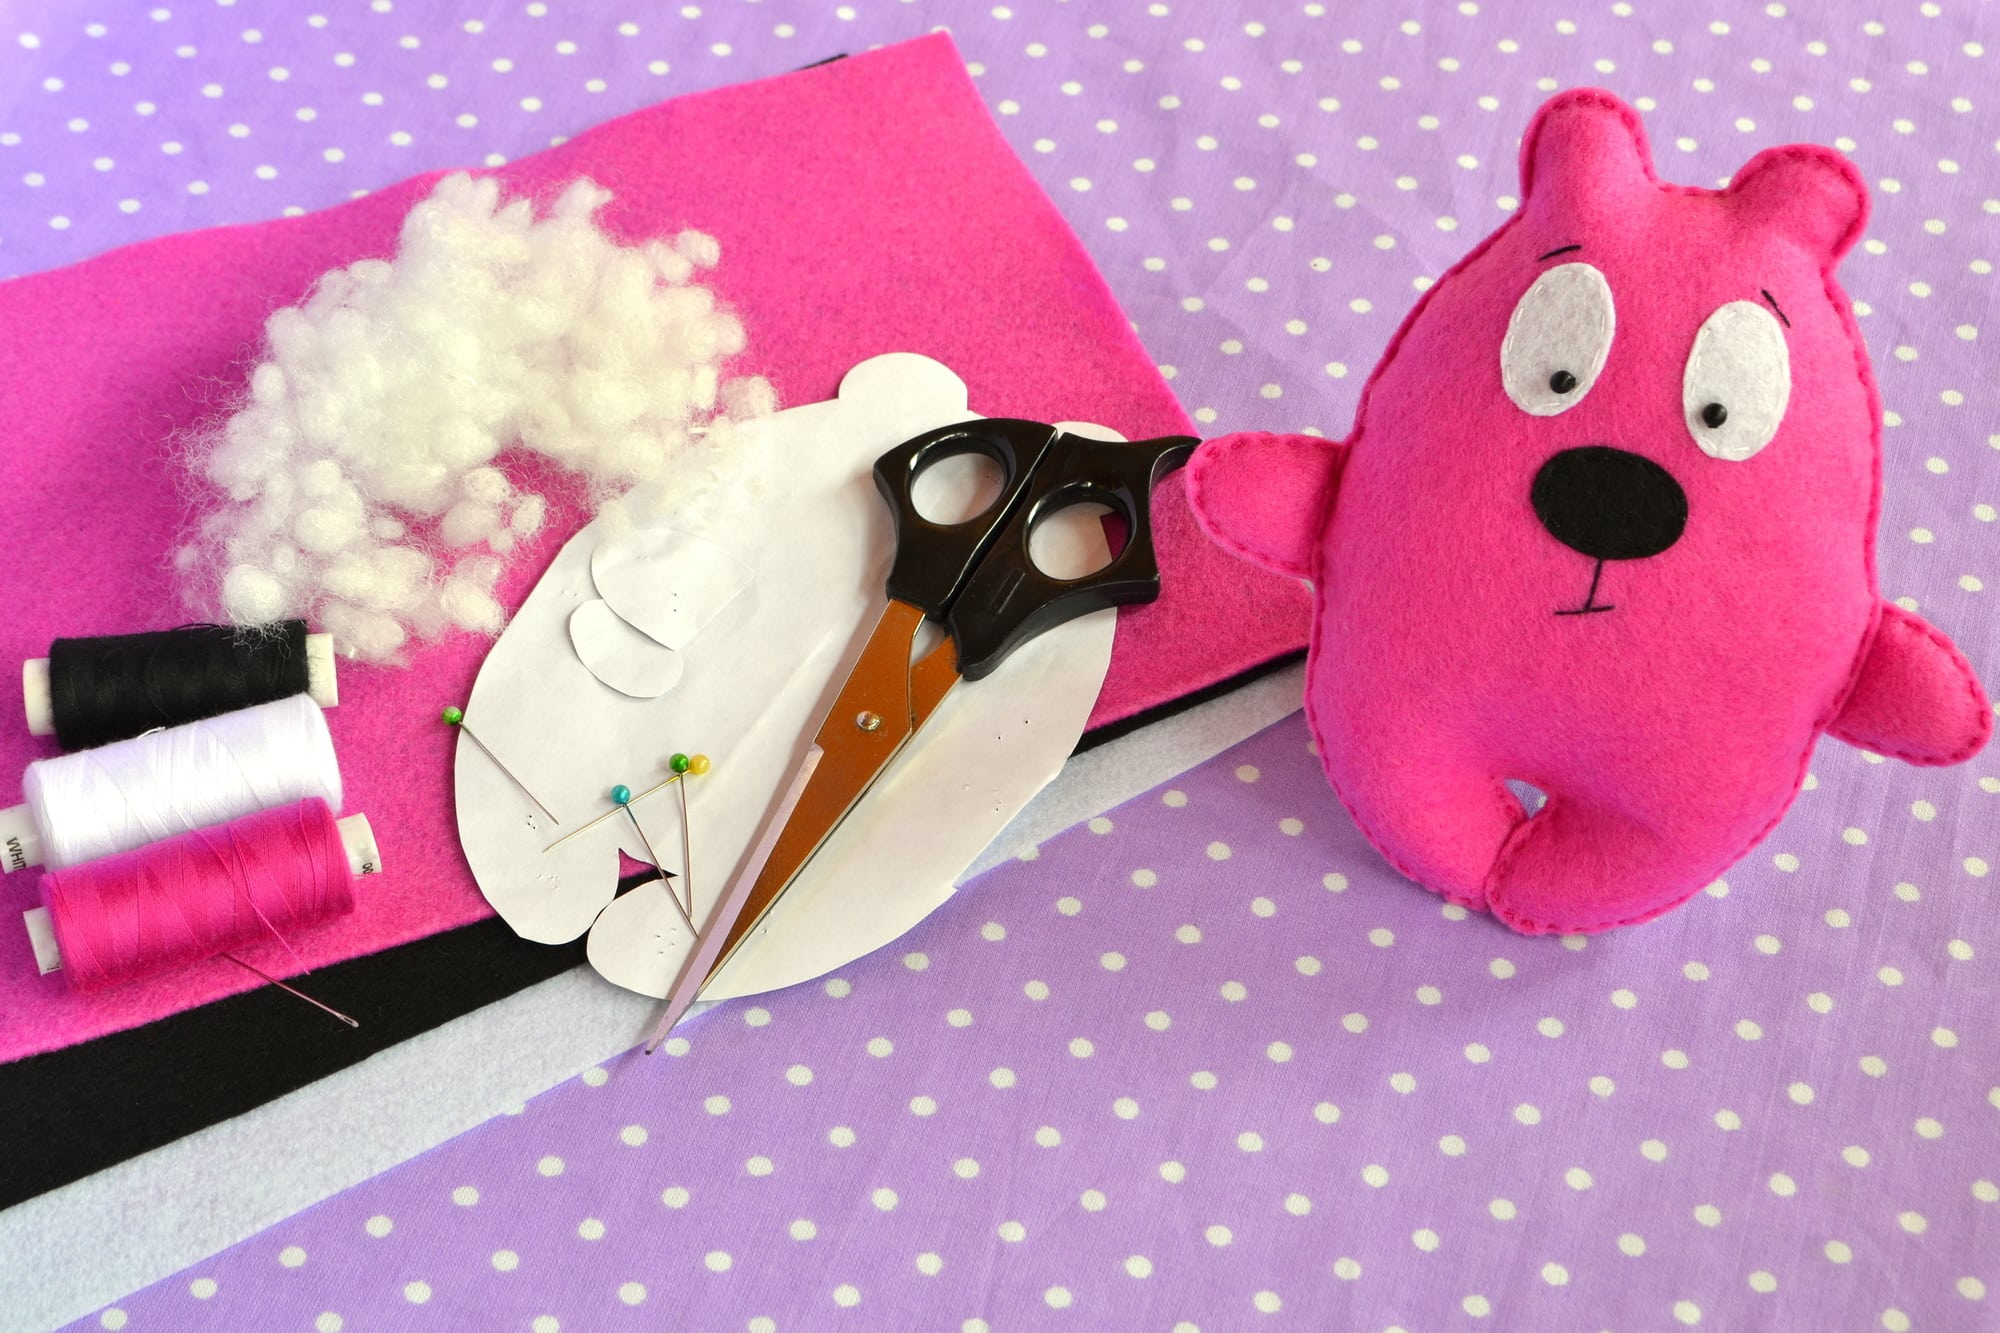 Pink felt Teddy bear, handmade toy. Scissors, needle, thread, pins, paper templates - sewing kit